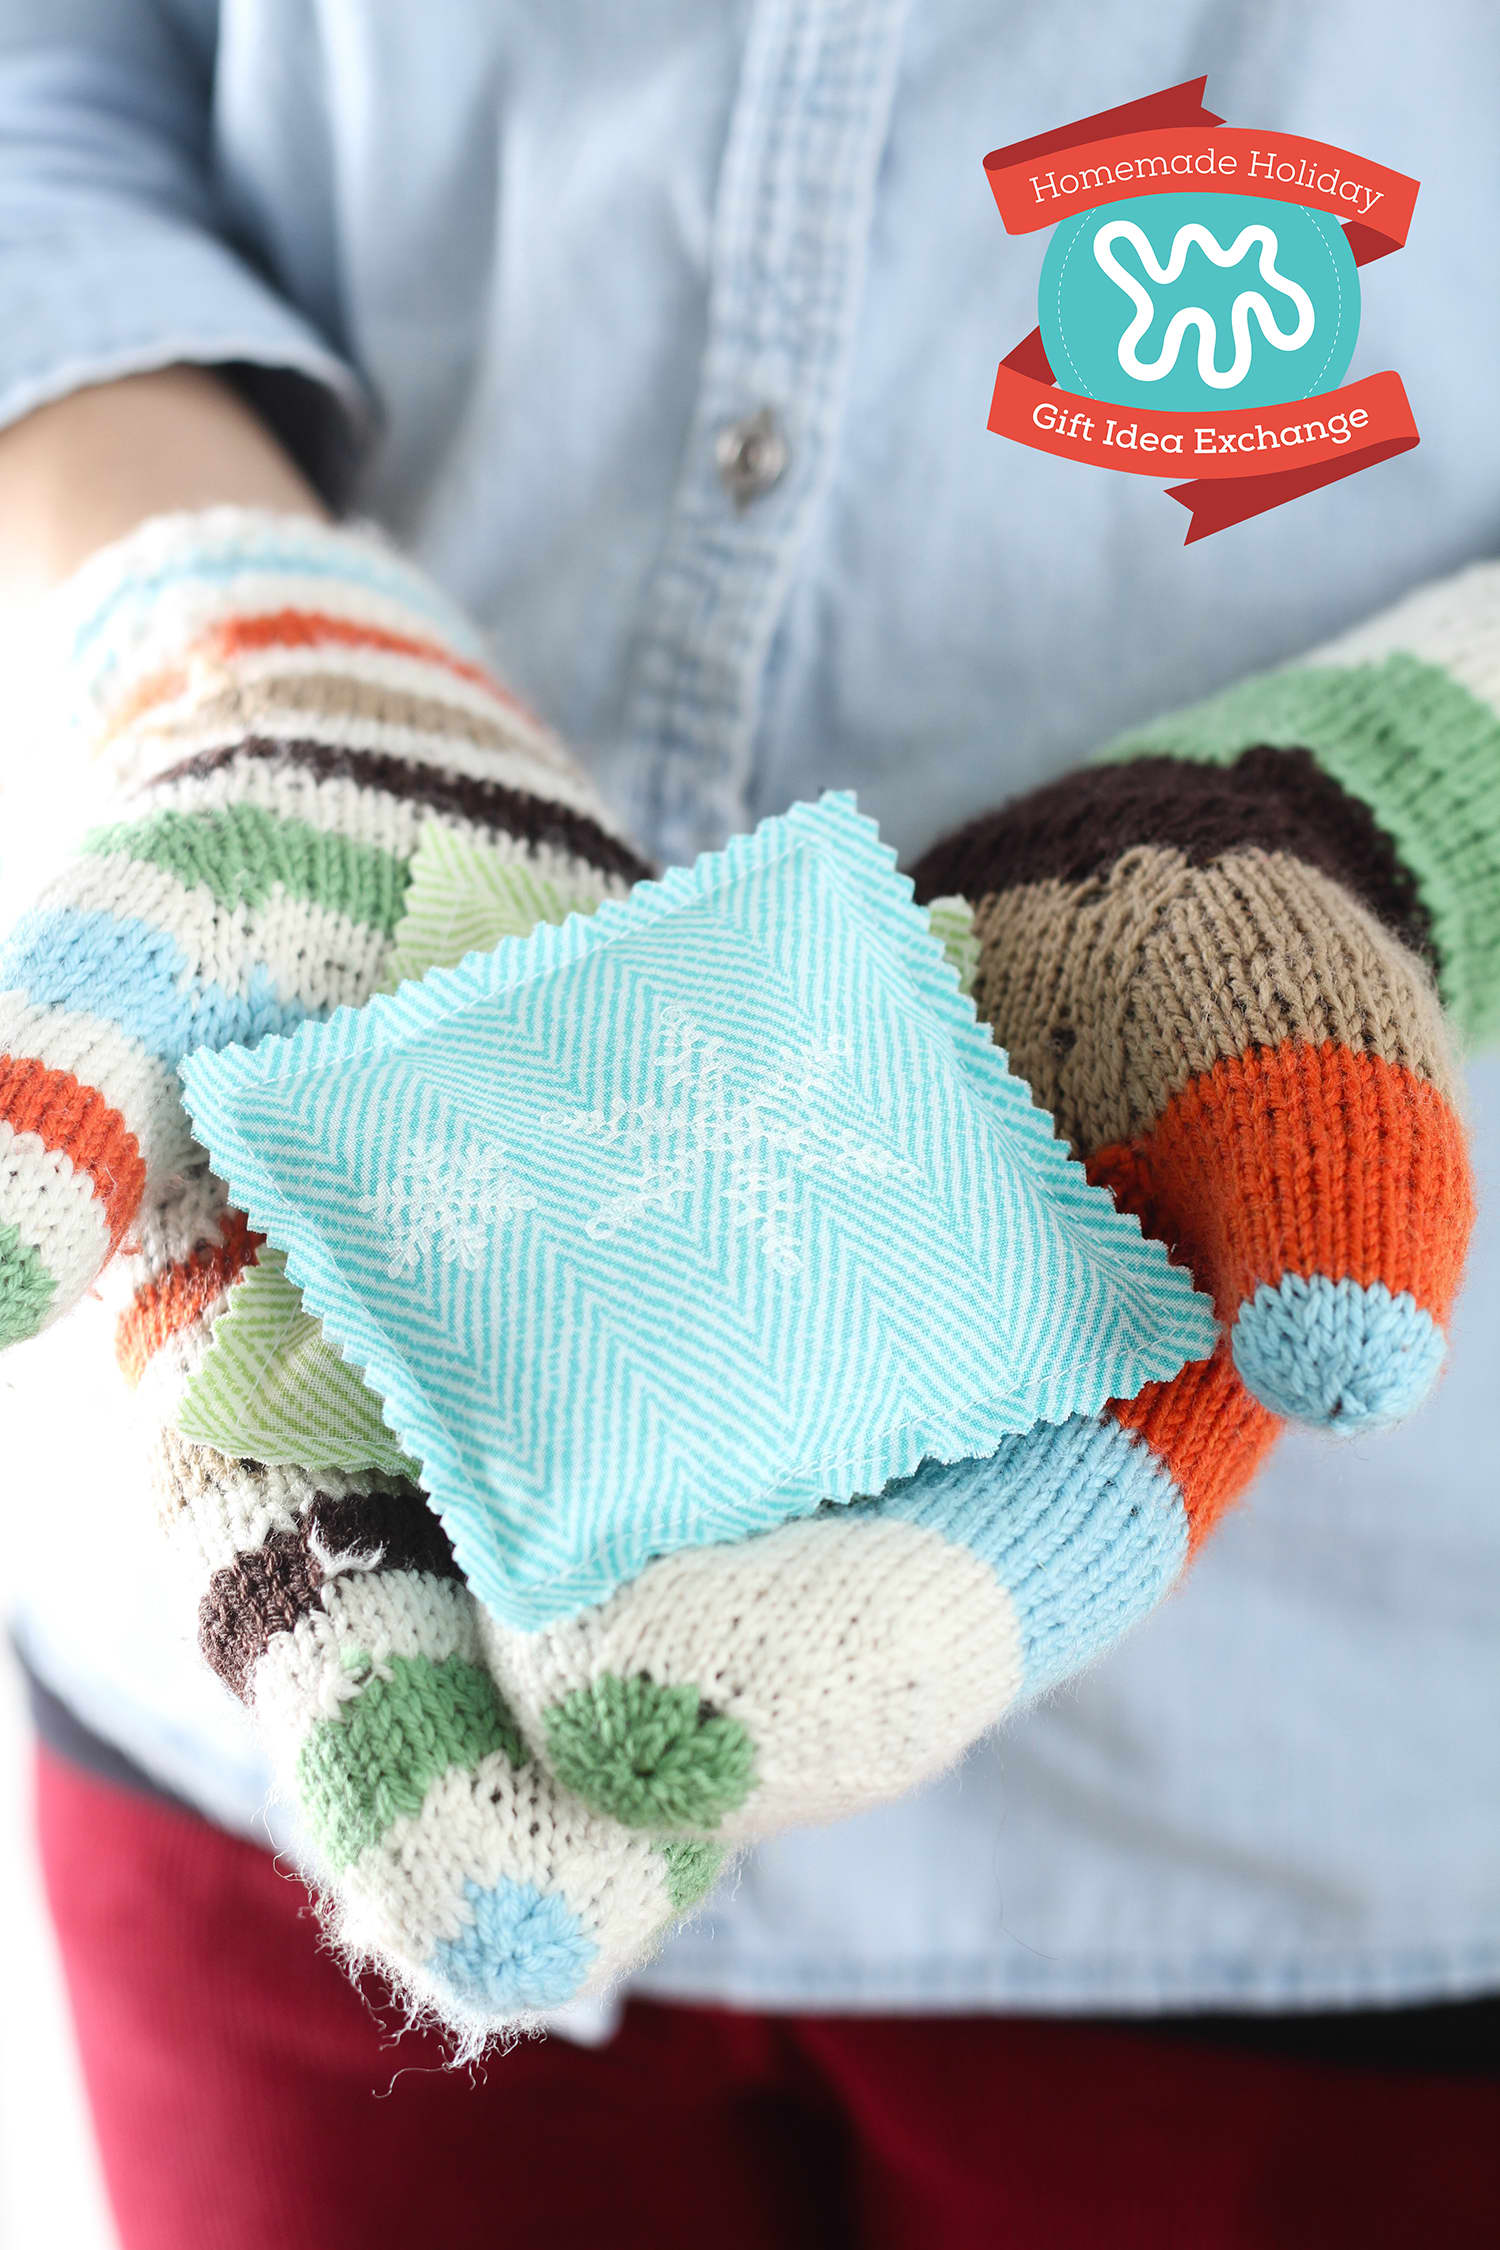 Homemade Holiday Gift Idea: Make These Cozy Lavender Handwarmers